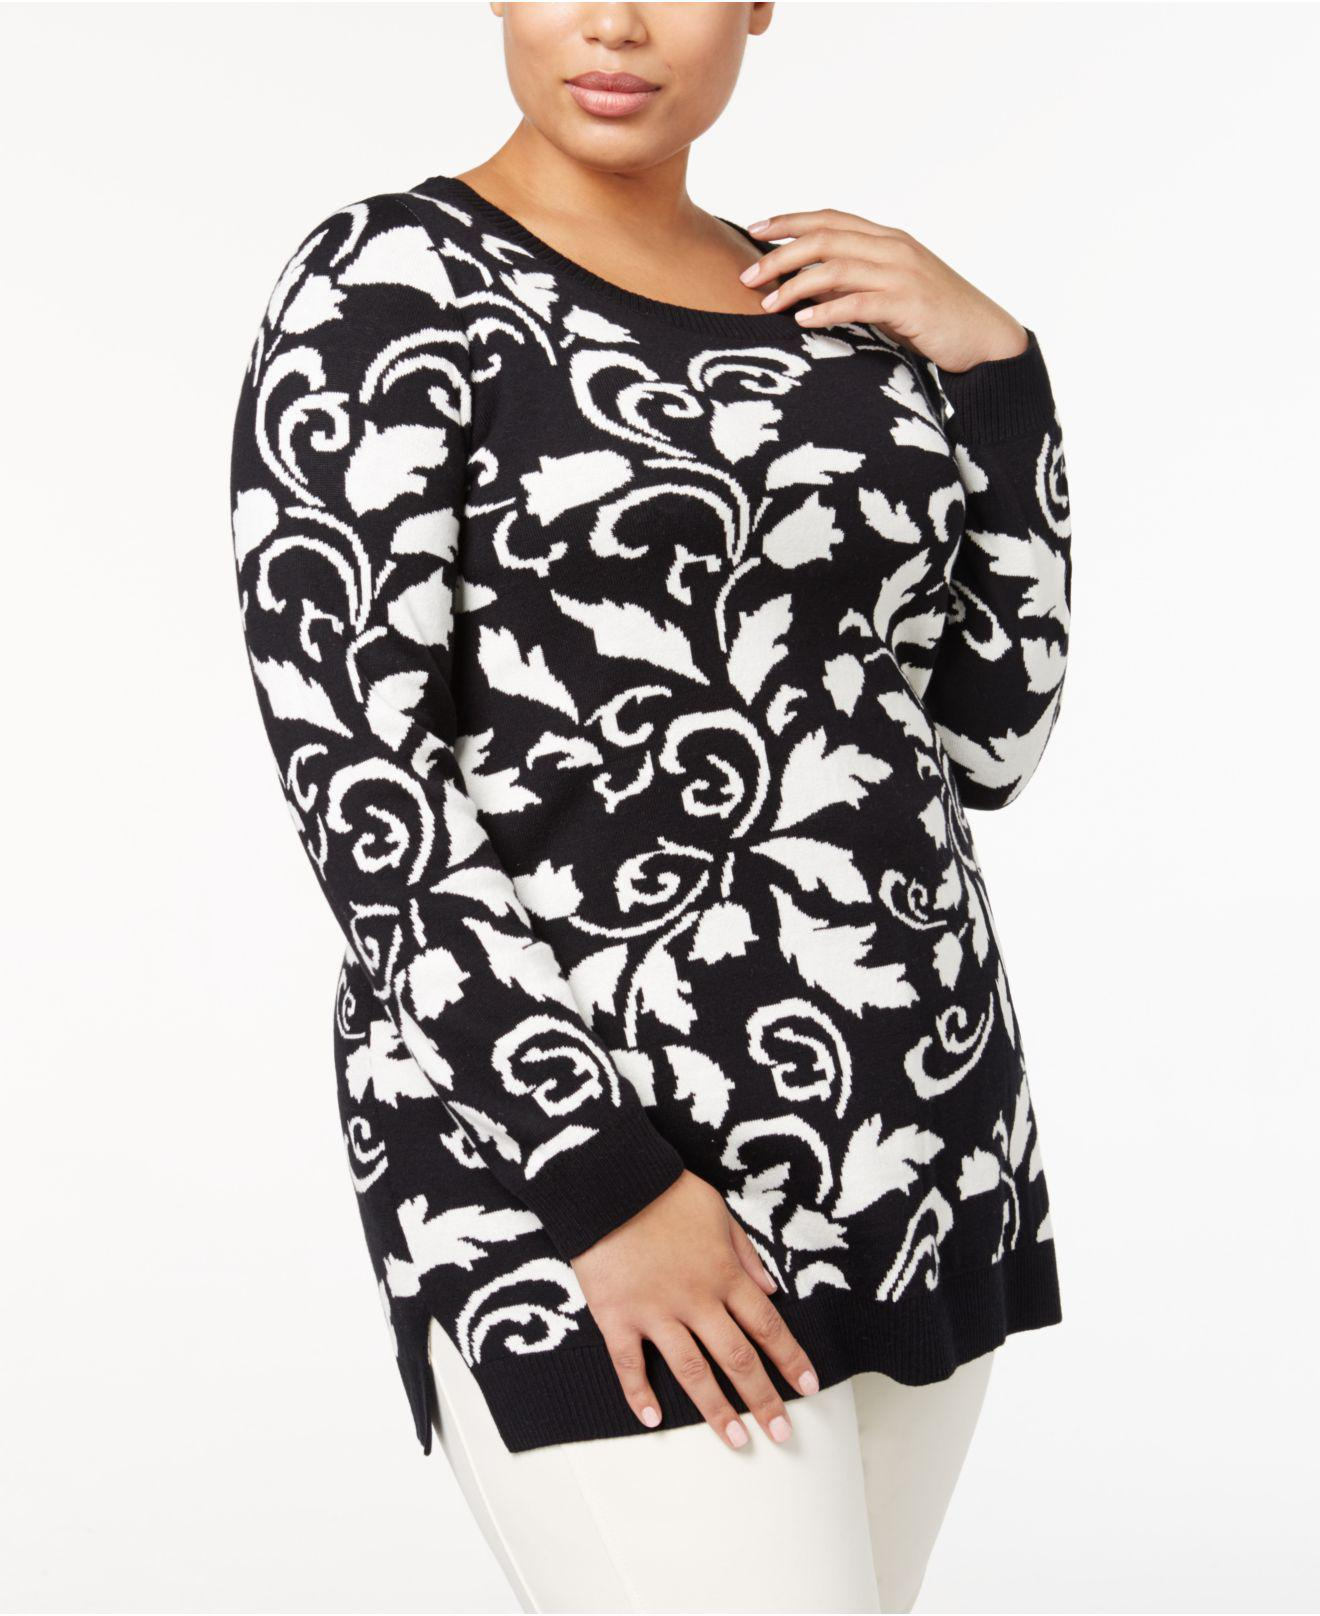 2935a9d7f3c Charter Club Plus Size Heart-print Sweater Tunic in Black - Lyst